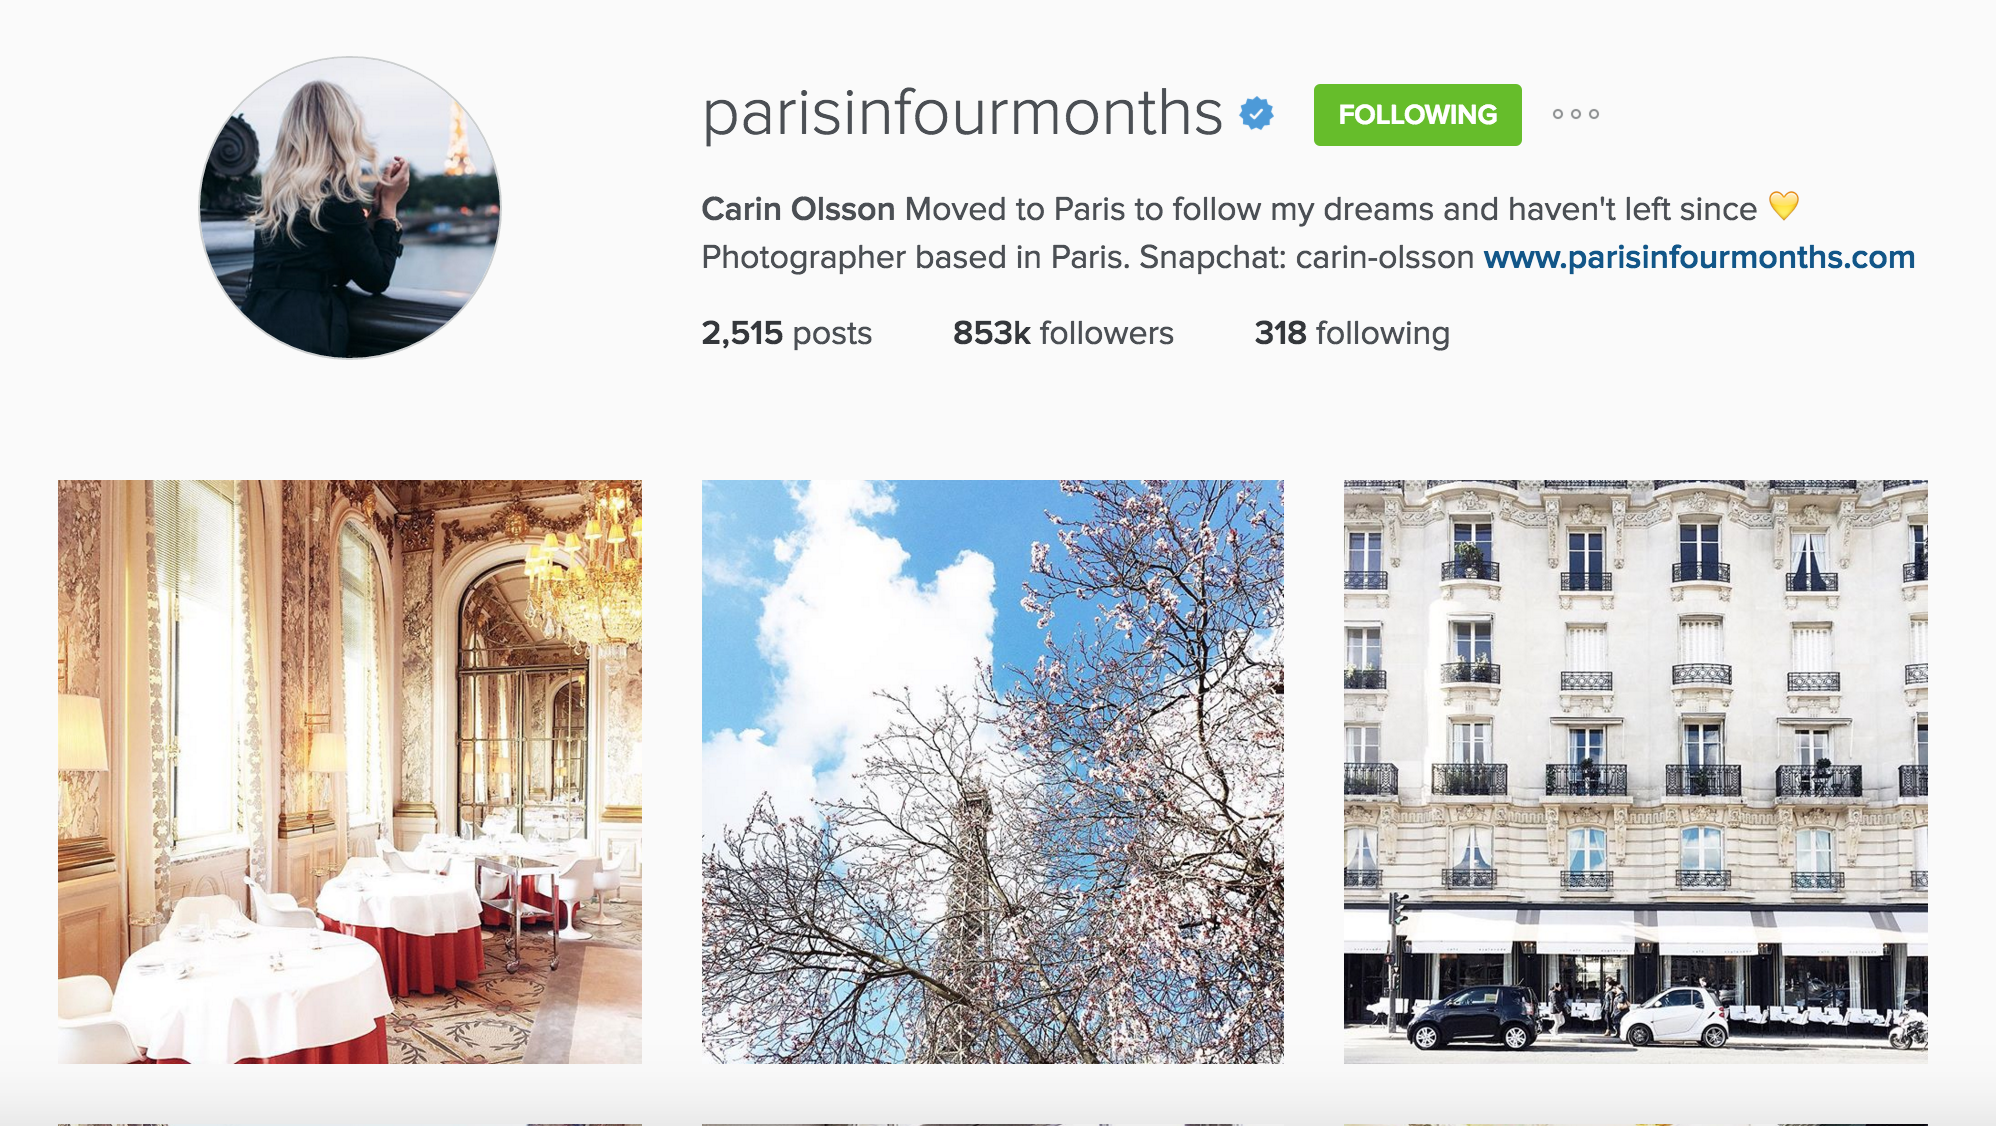 instagram cariboo paris account paris in four months carin olsson